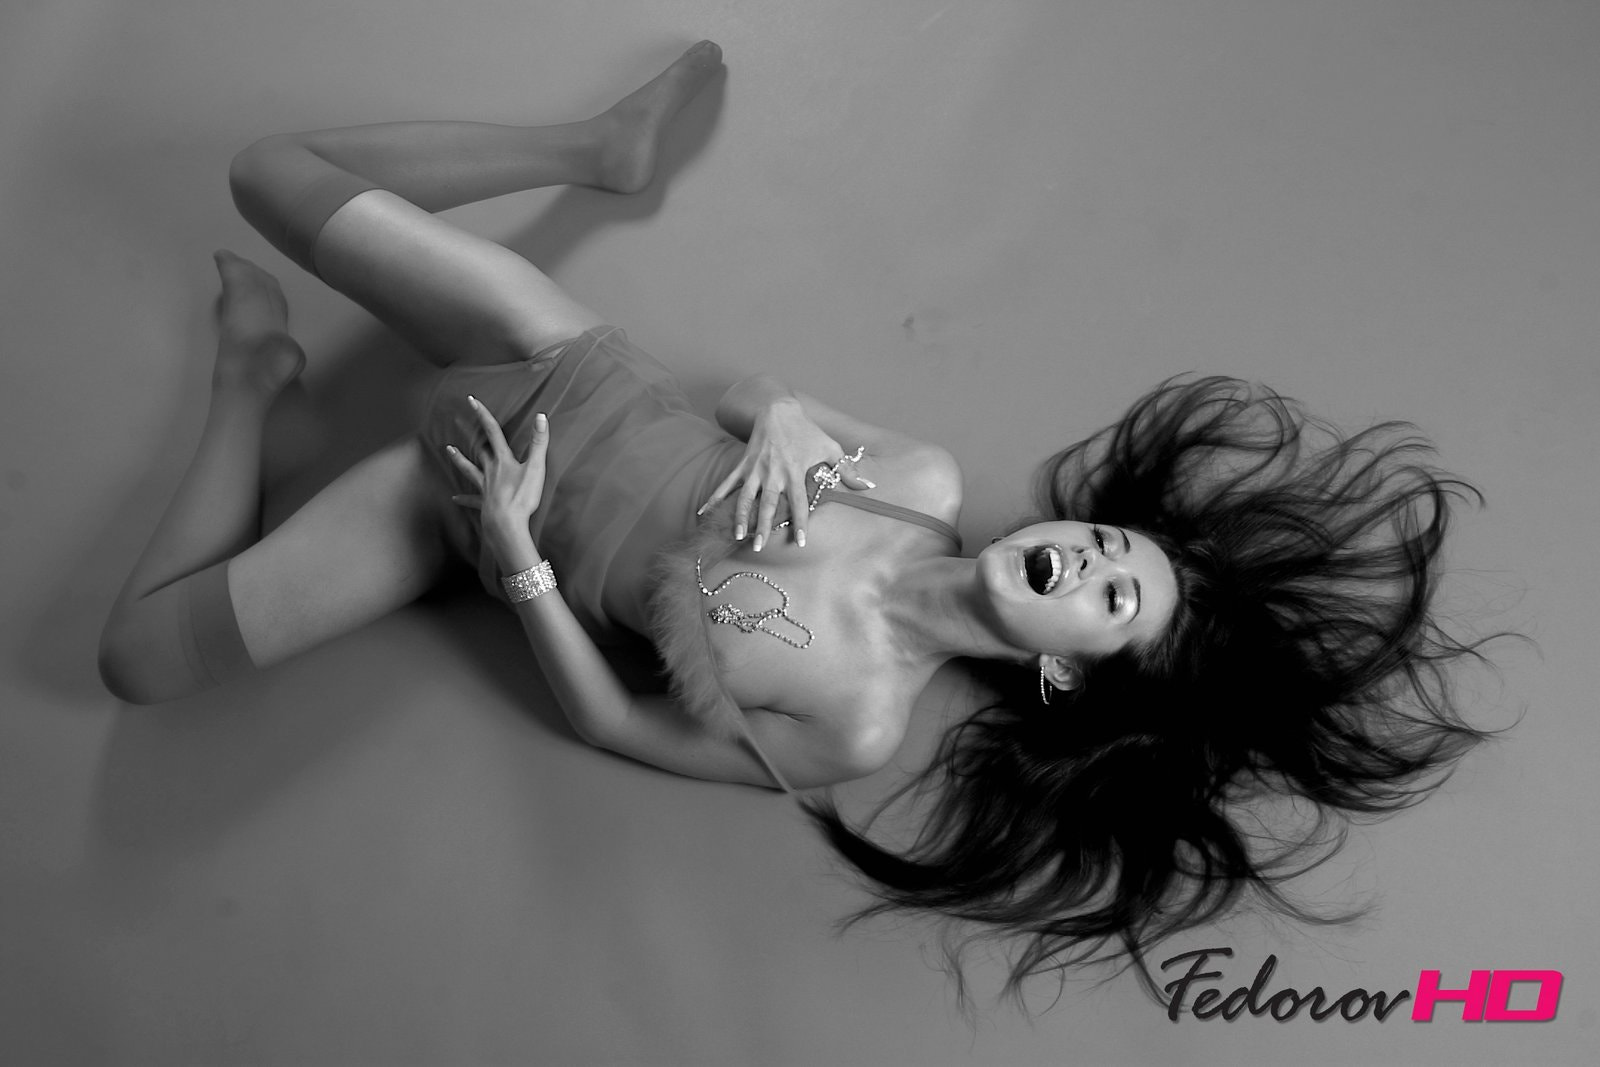 Photograph FedorovHD Eva by Fedorov HD on 500px